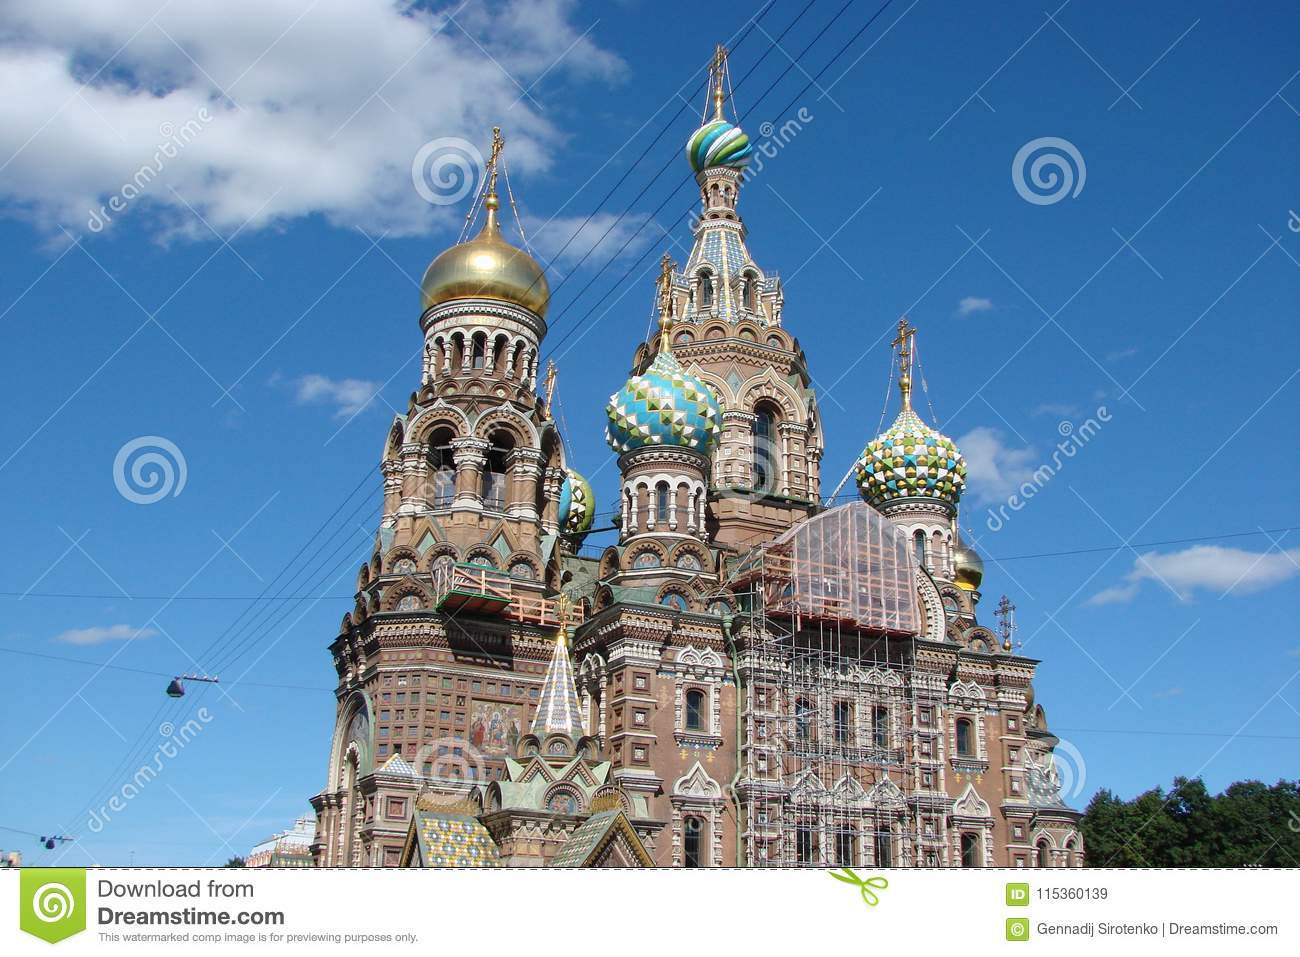 Architecture of St. Petersburg: description, attractions and interesting facts 64